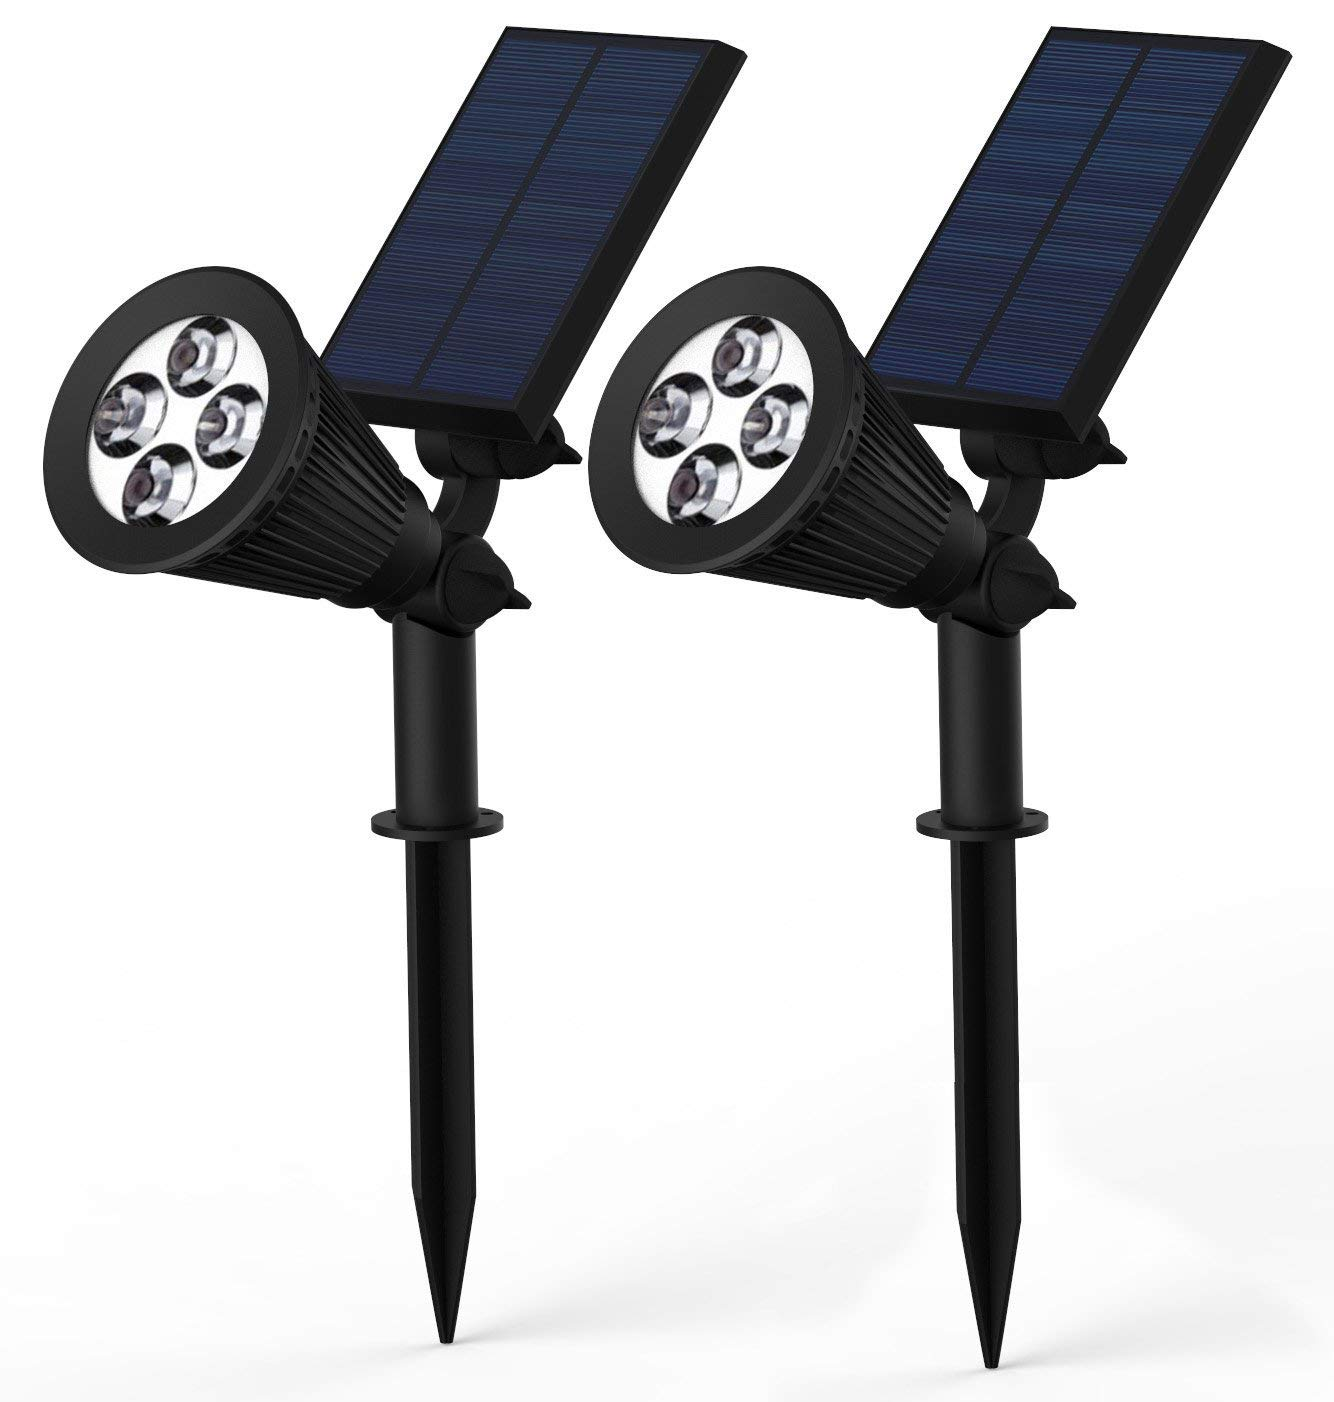 Magictec Warm Solar Spotlights – 2-in-1 LED Lights